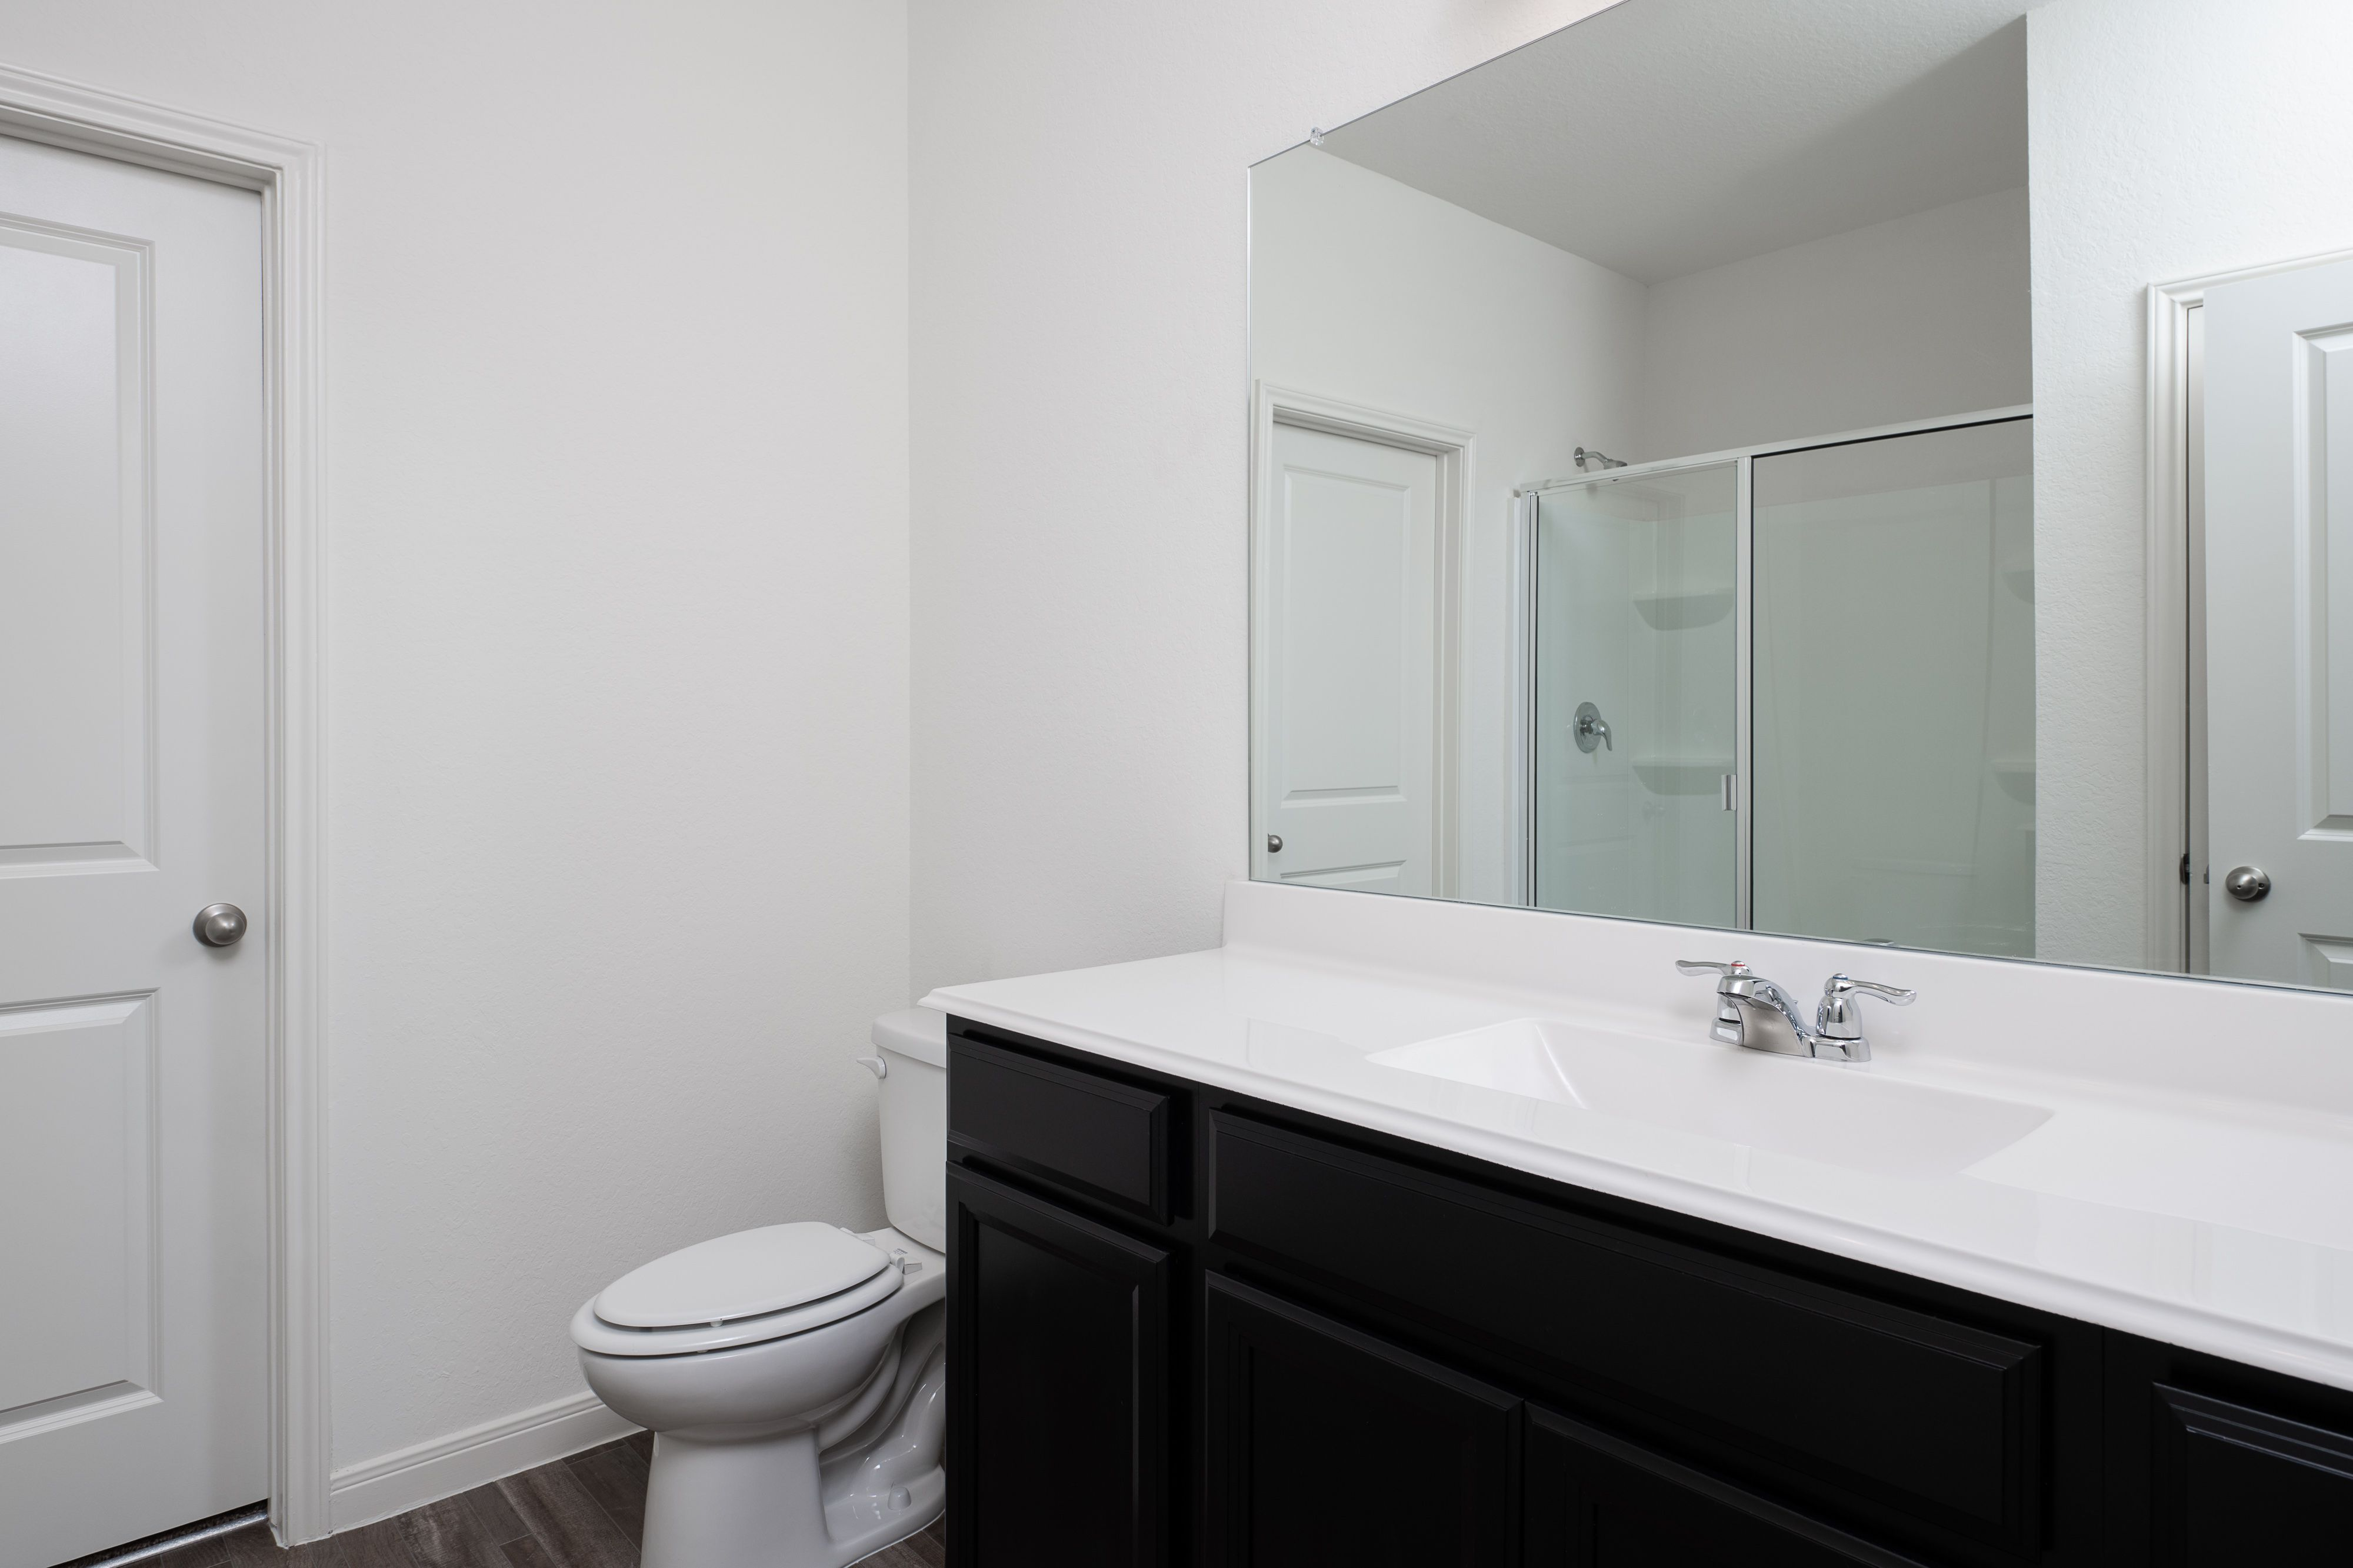 Bathroom featured in the Moonbeam By Starlight Homes in Daytona Beach, FL